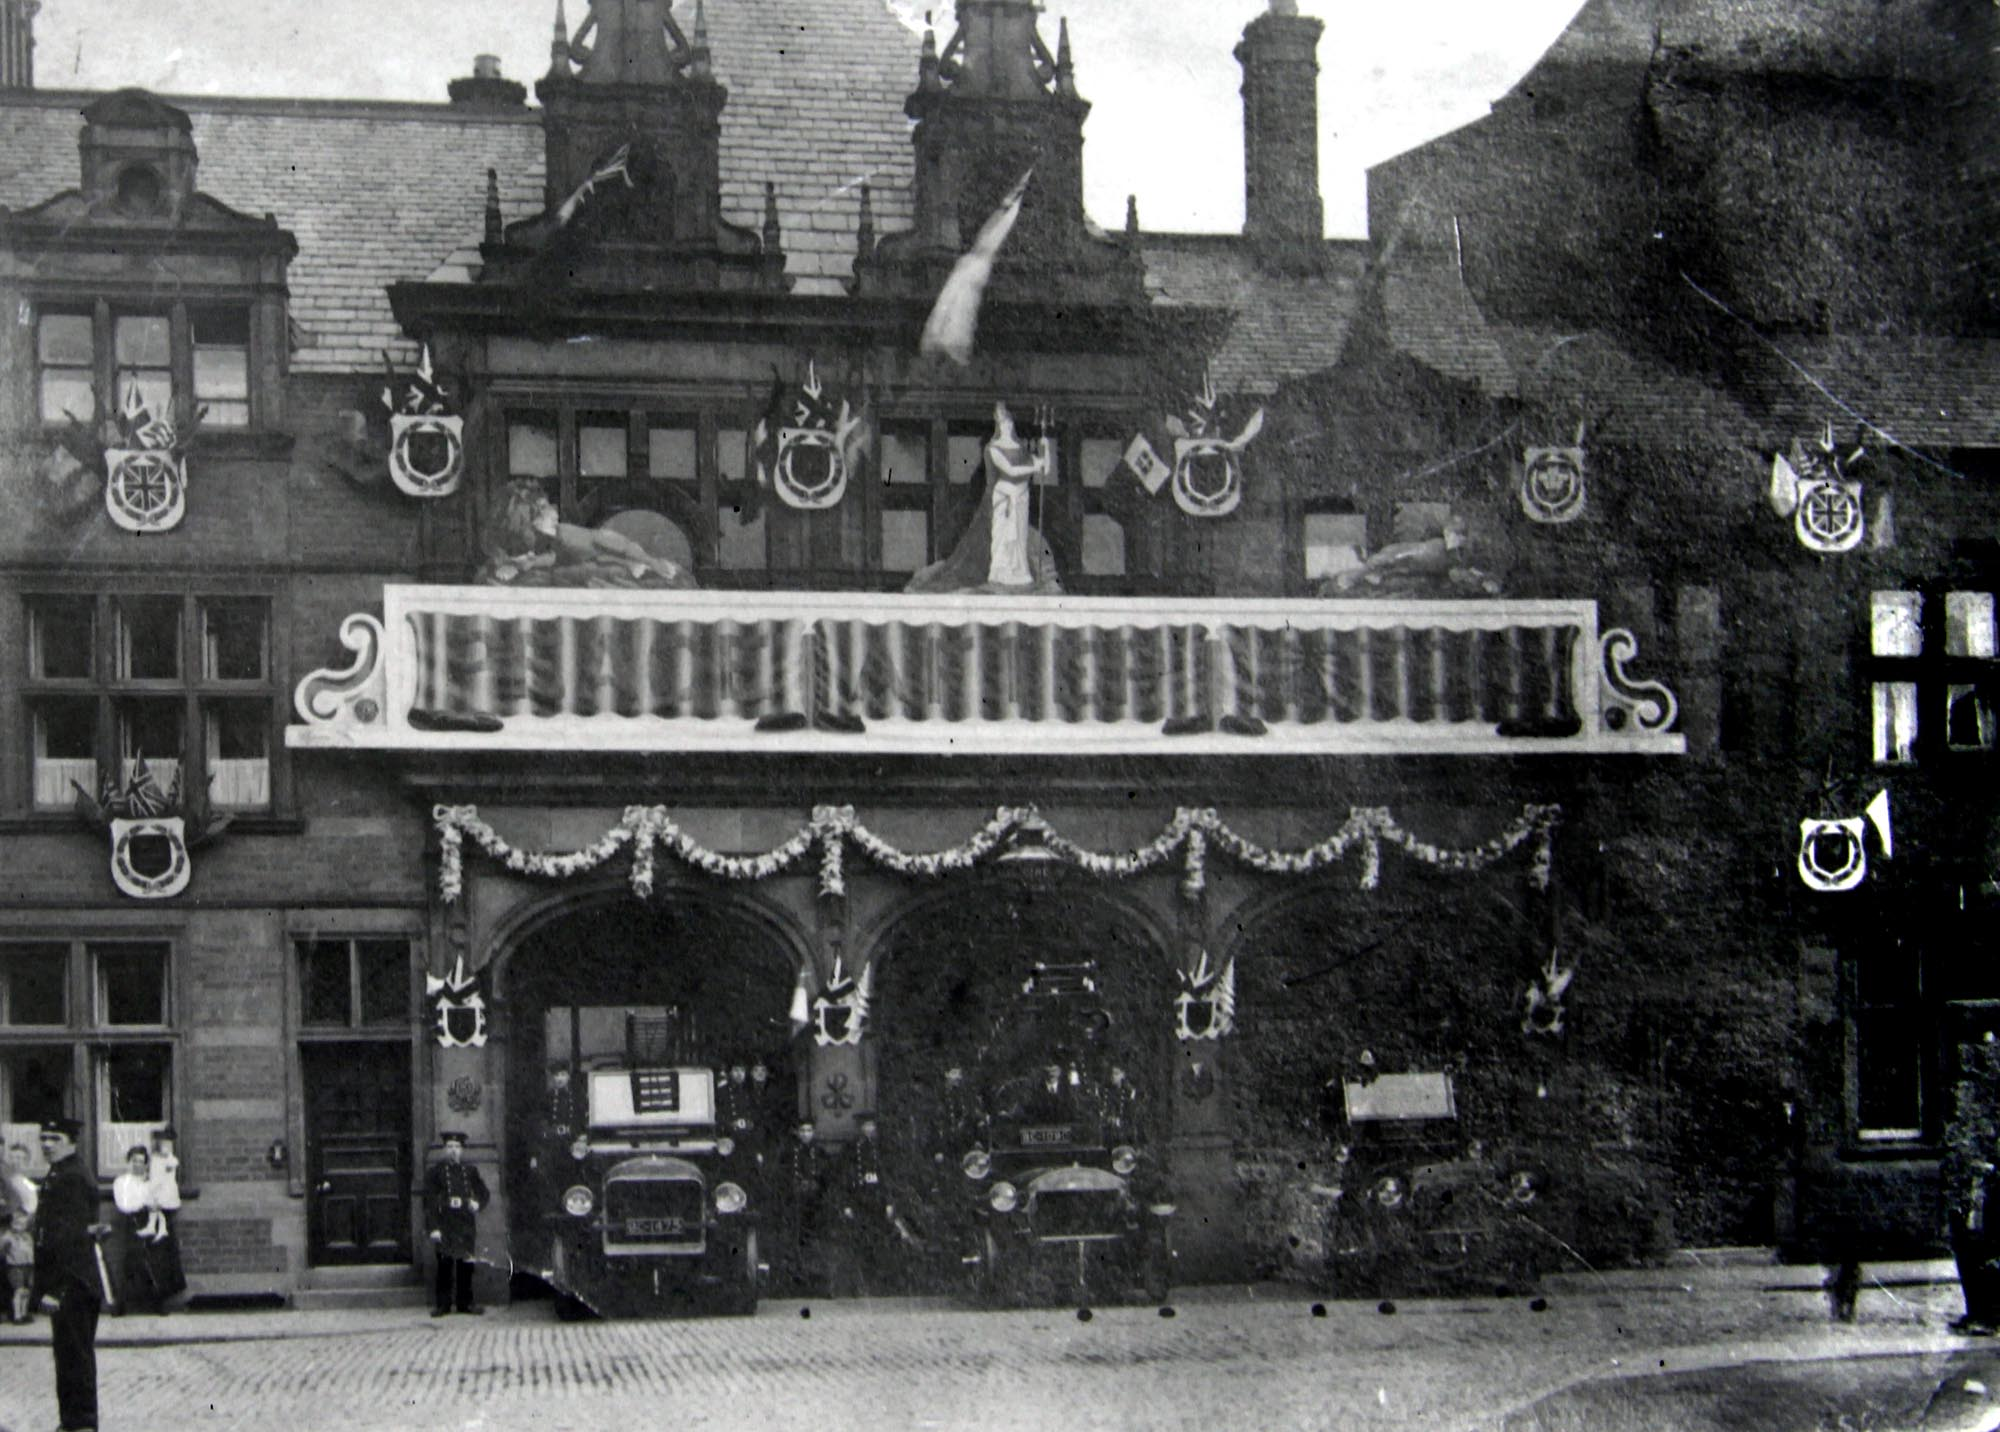 Rutland Street Fire Station decorated for the 1902 coronation of King Edward VII and Queen Alexandra - Leicestershire Record Office